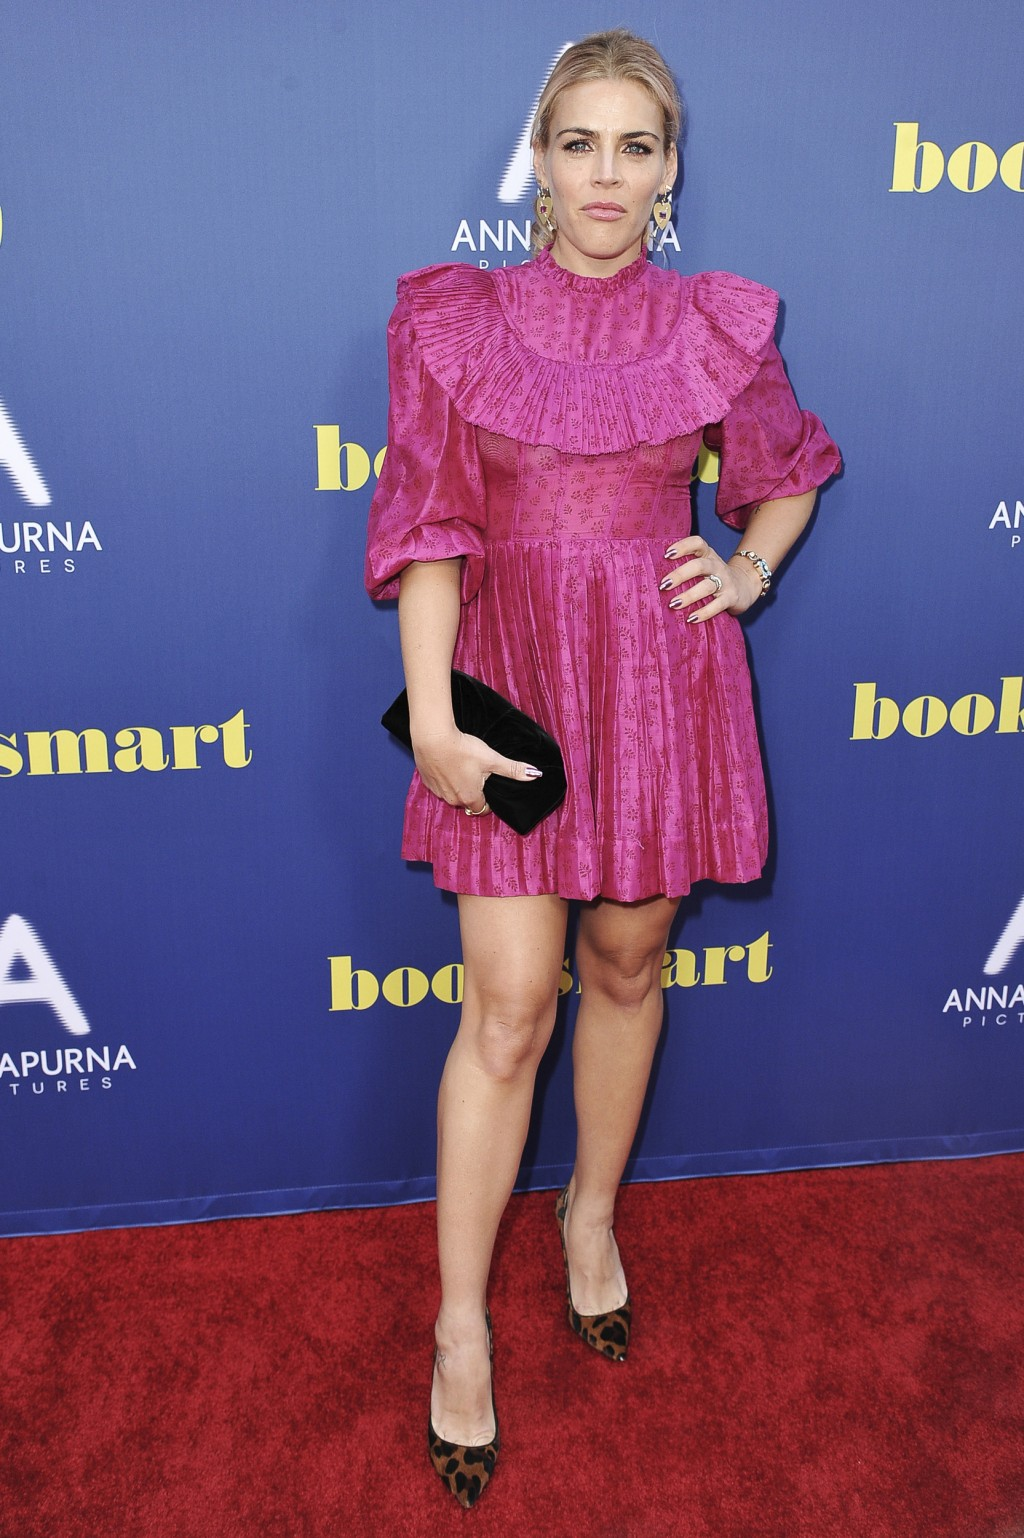 """Busy Philipps attends a special screening of """"Booksmart,"""" at the Theatre at Ace Hotel, Monday, May 13, 2019, in Los Angeles. (Photo by Richard Shotwel..."""